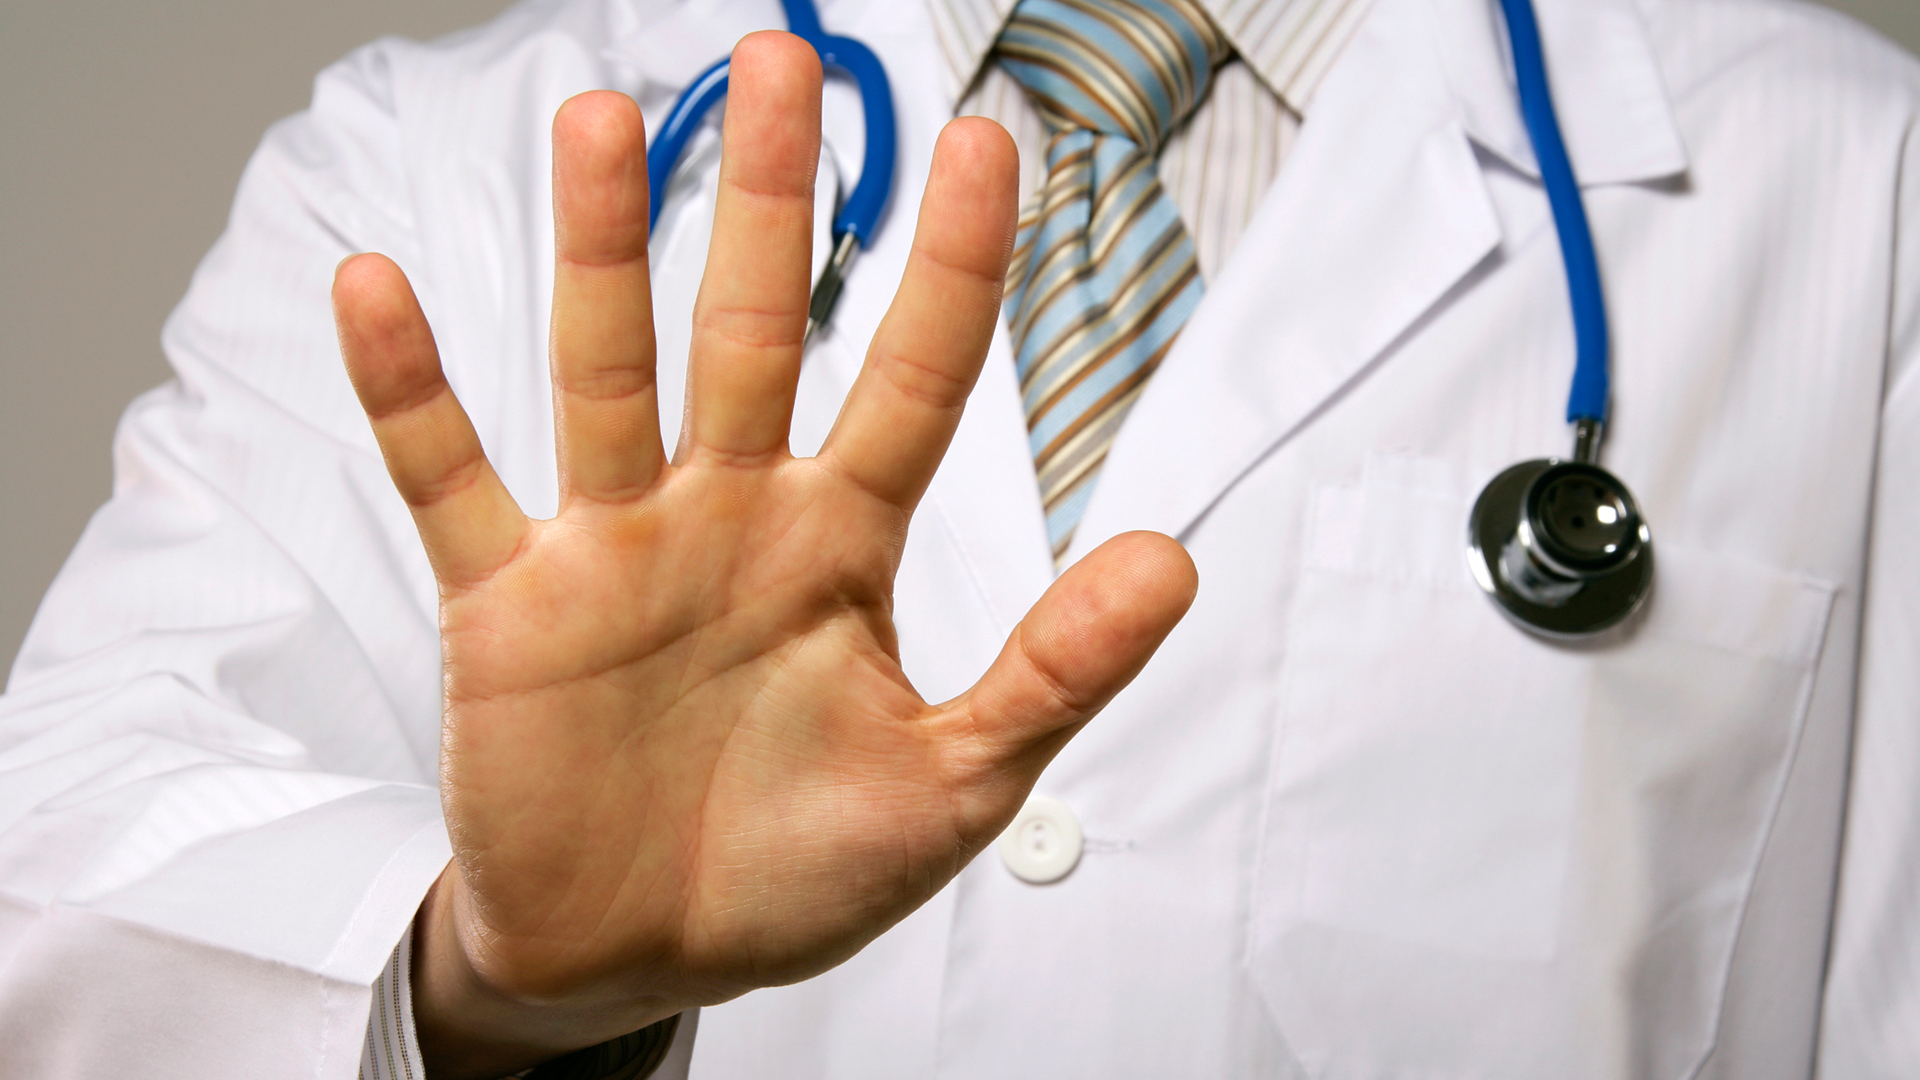 Doctor showing palm | Sheknows.com